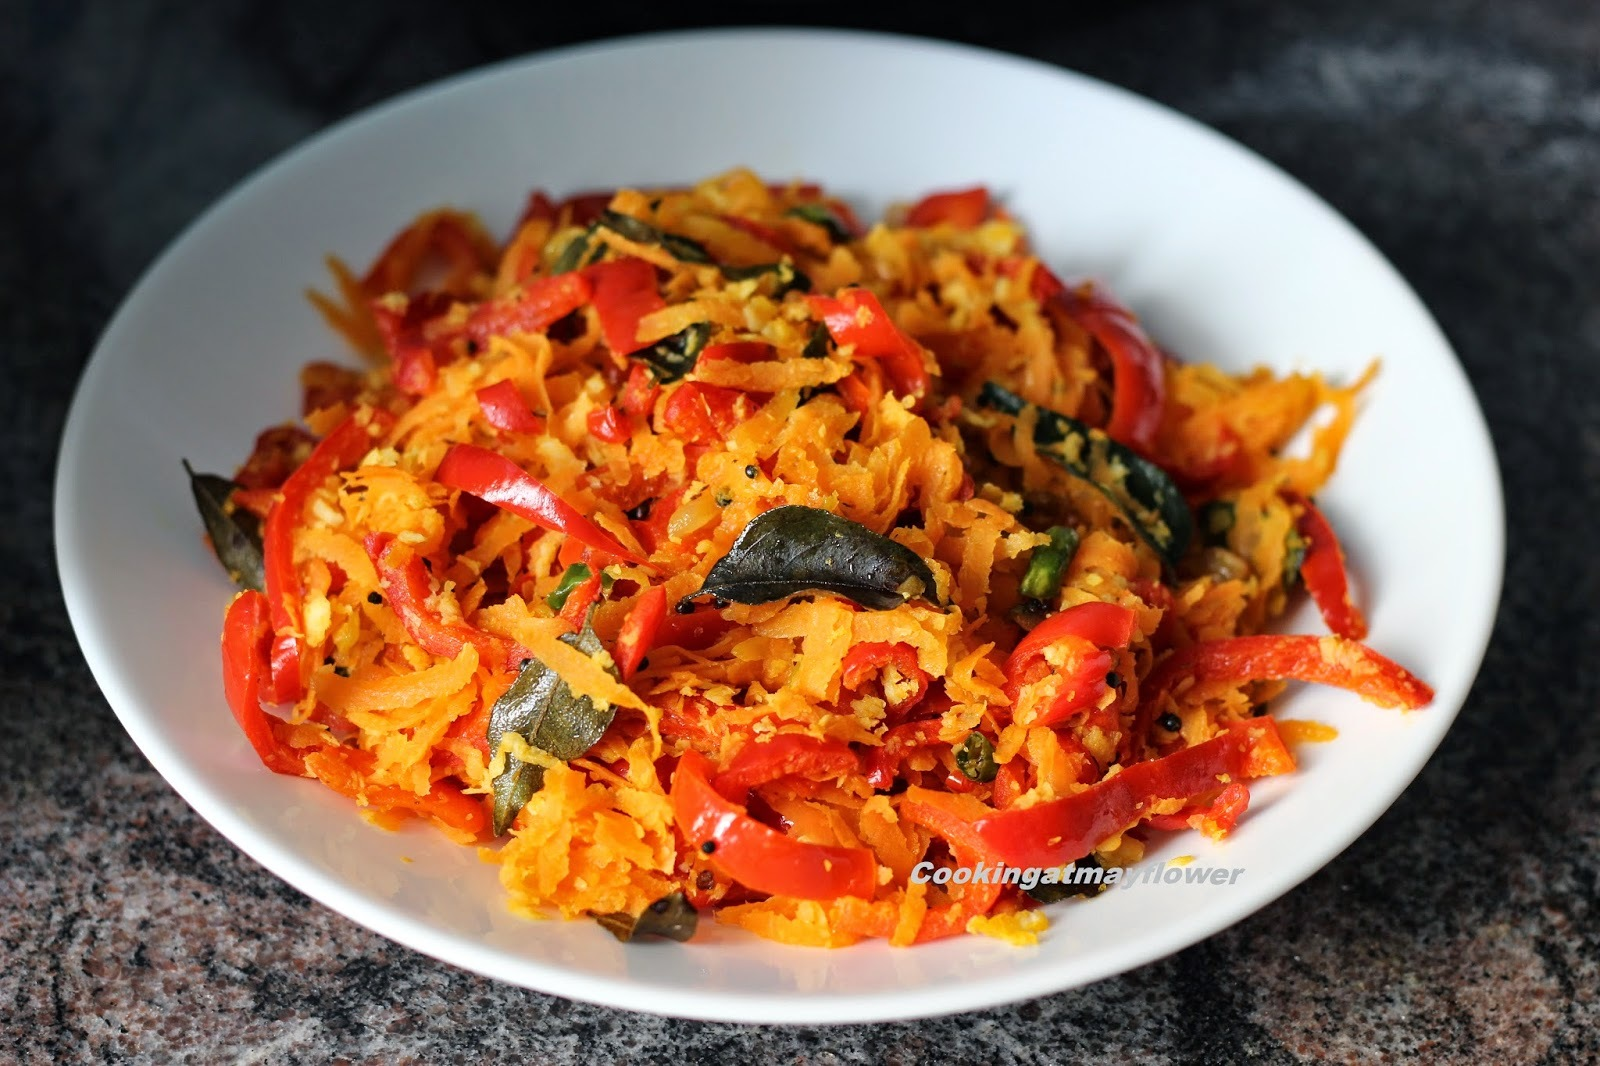 Carrot red bell pepper thoran/ Carrot red capsicum stir fry